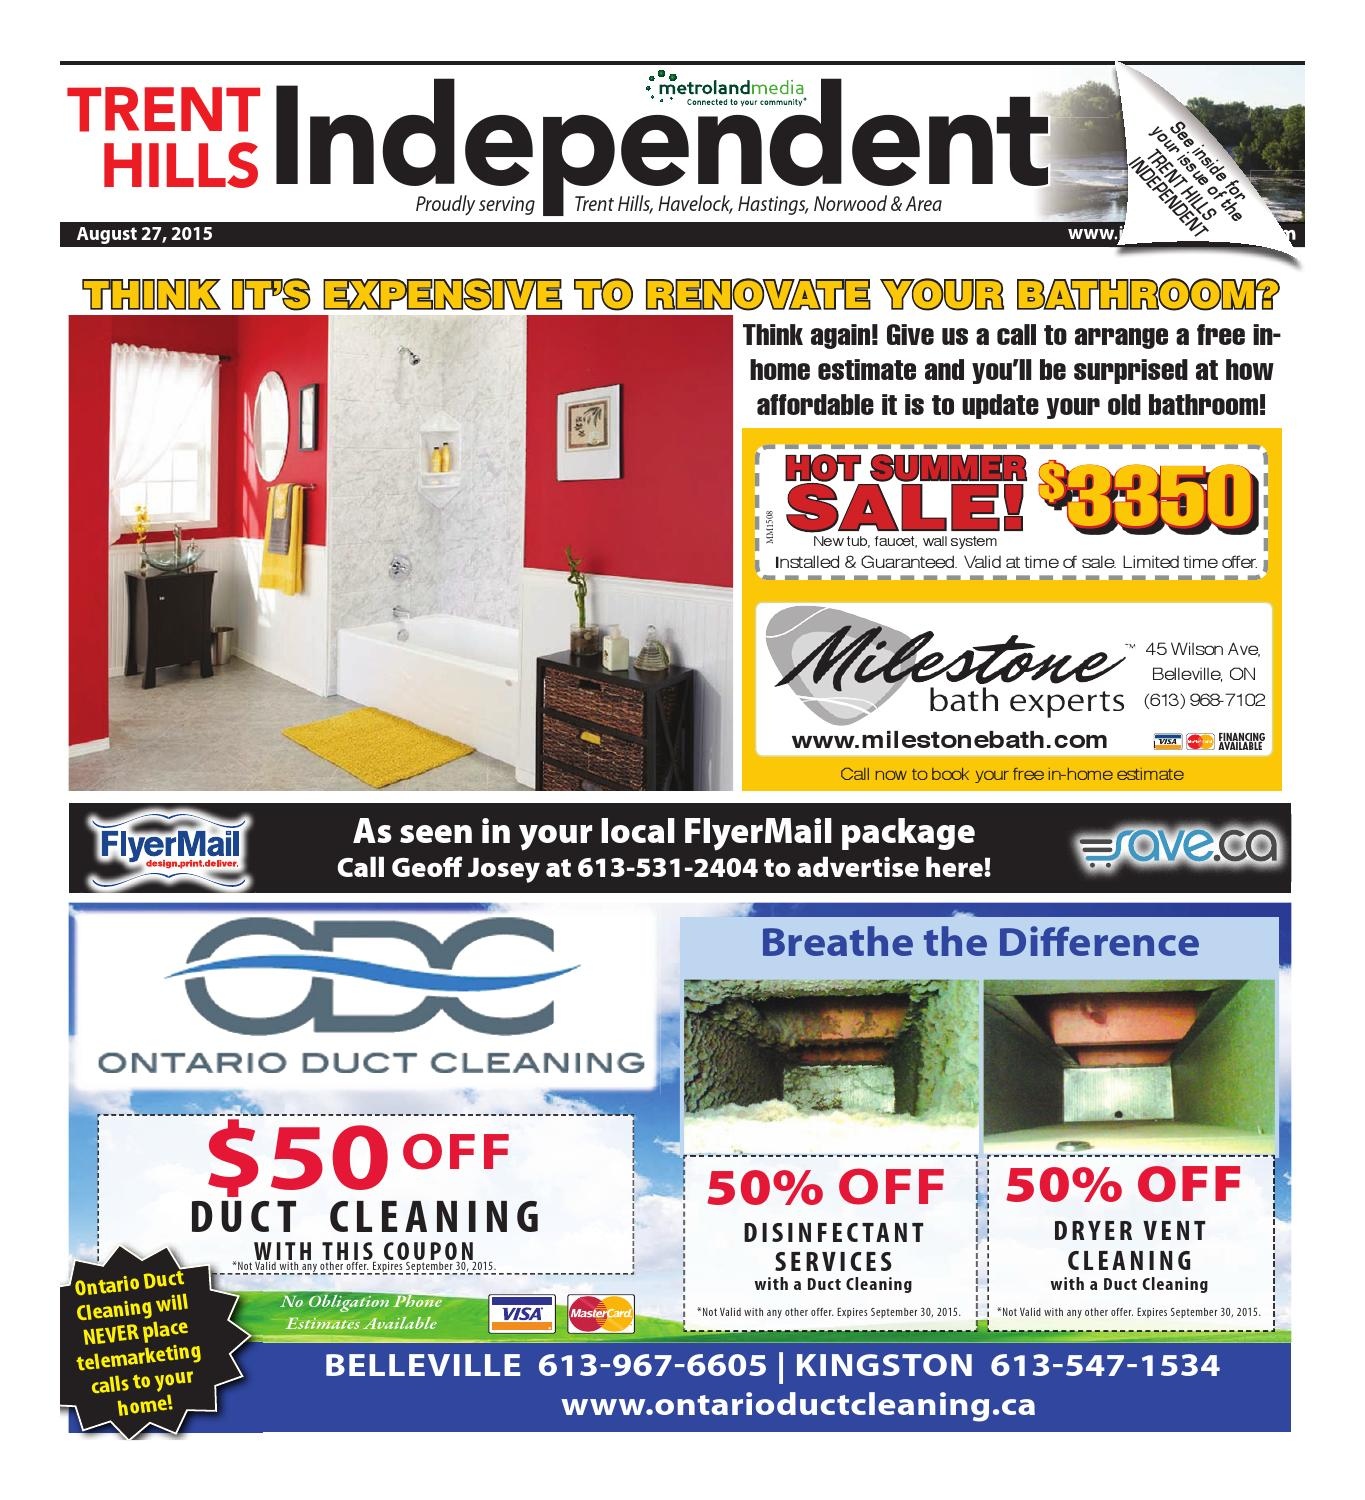 2129fe79b8dc Trenthills082715 by Metroland East - Trent Hills Independent - issuu